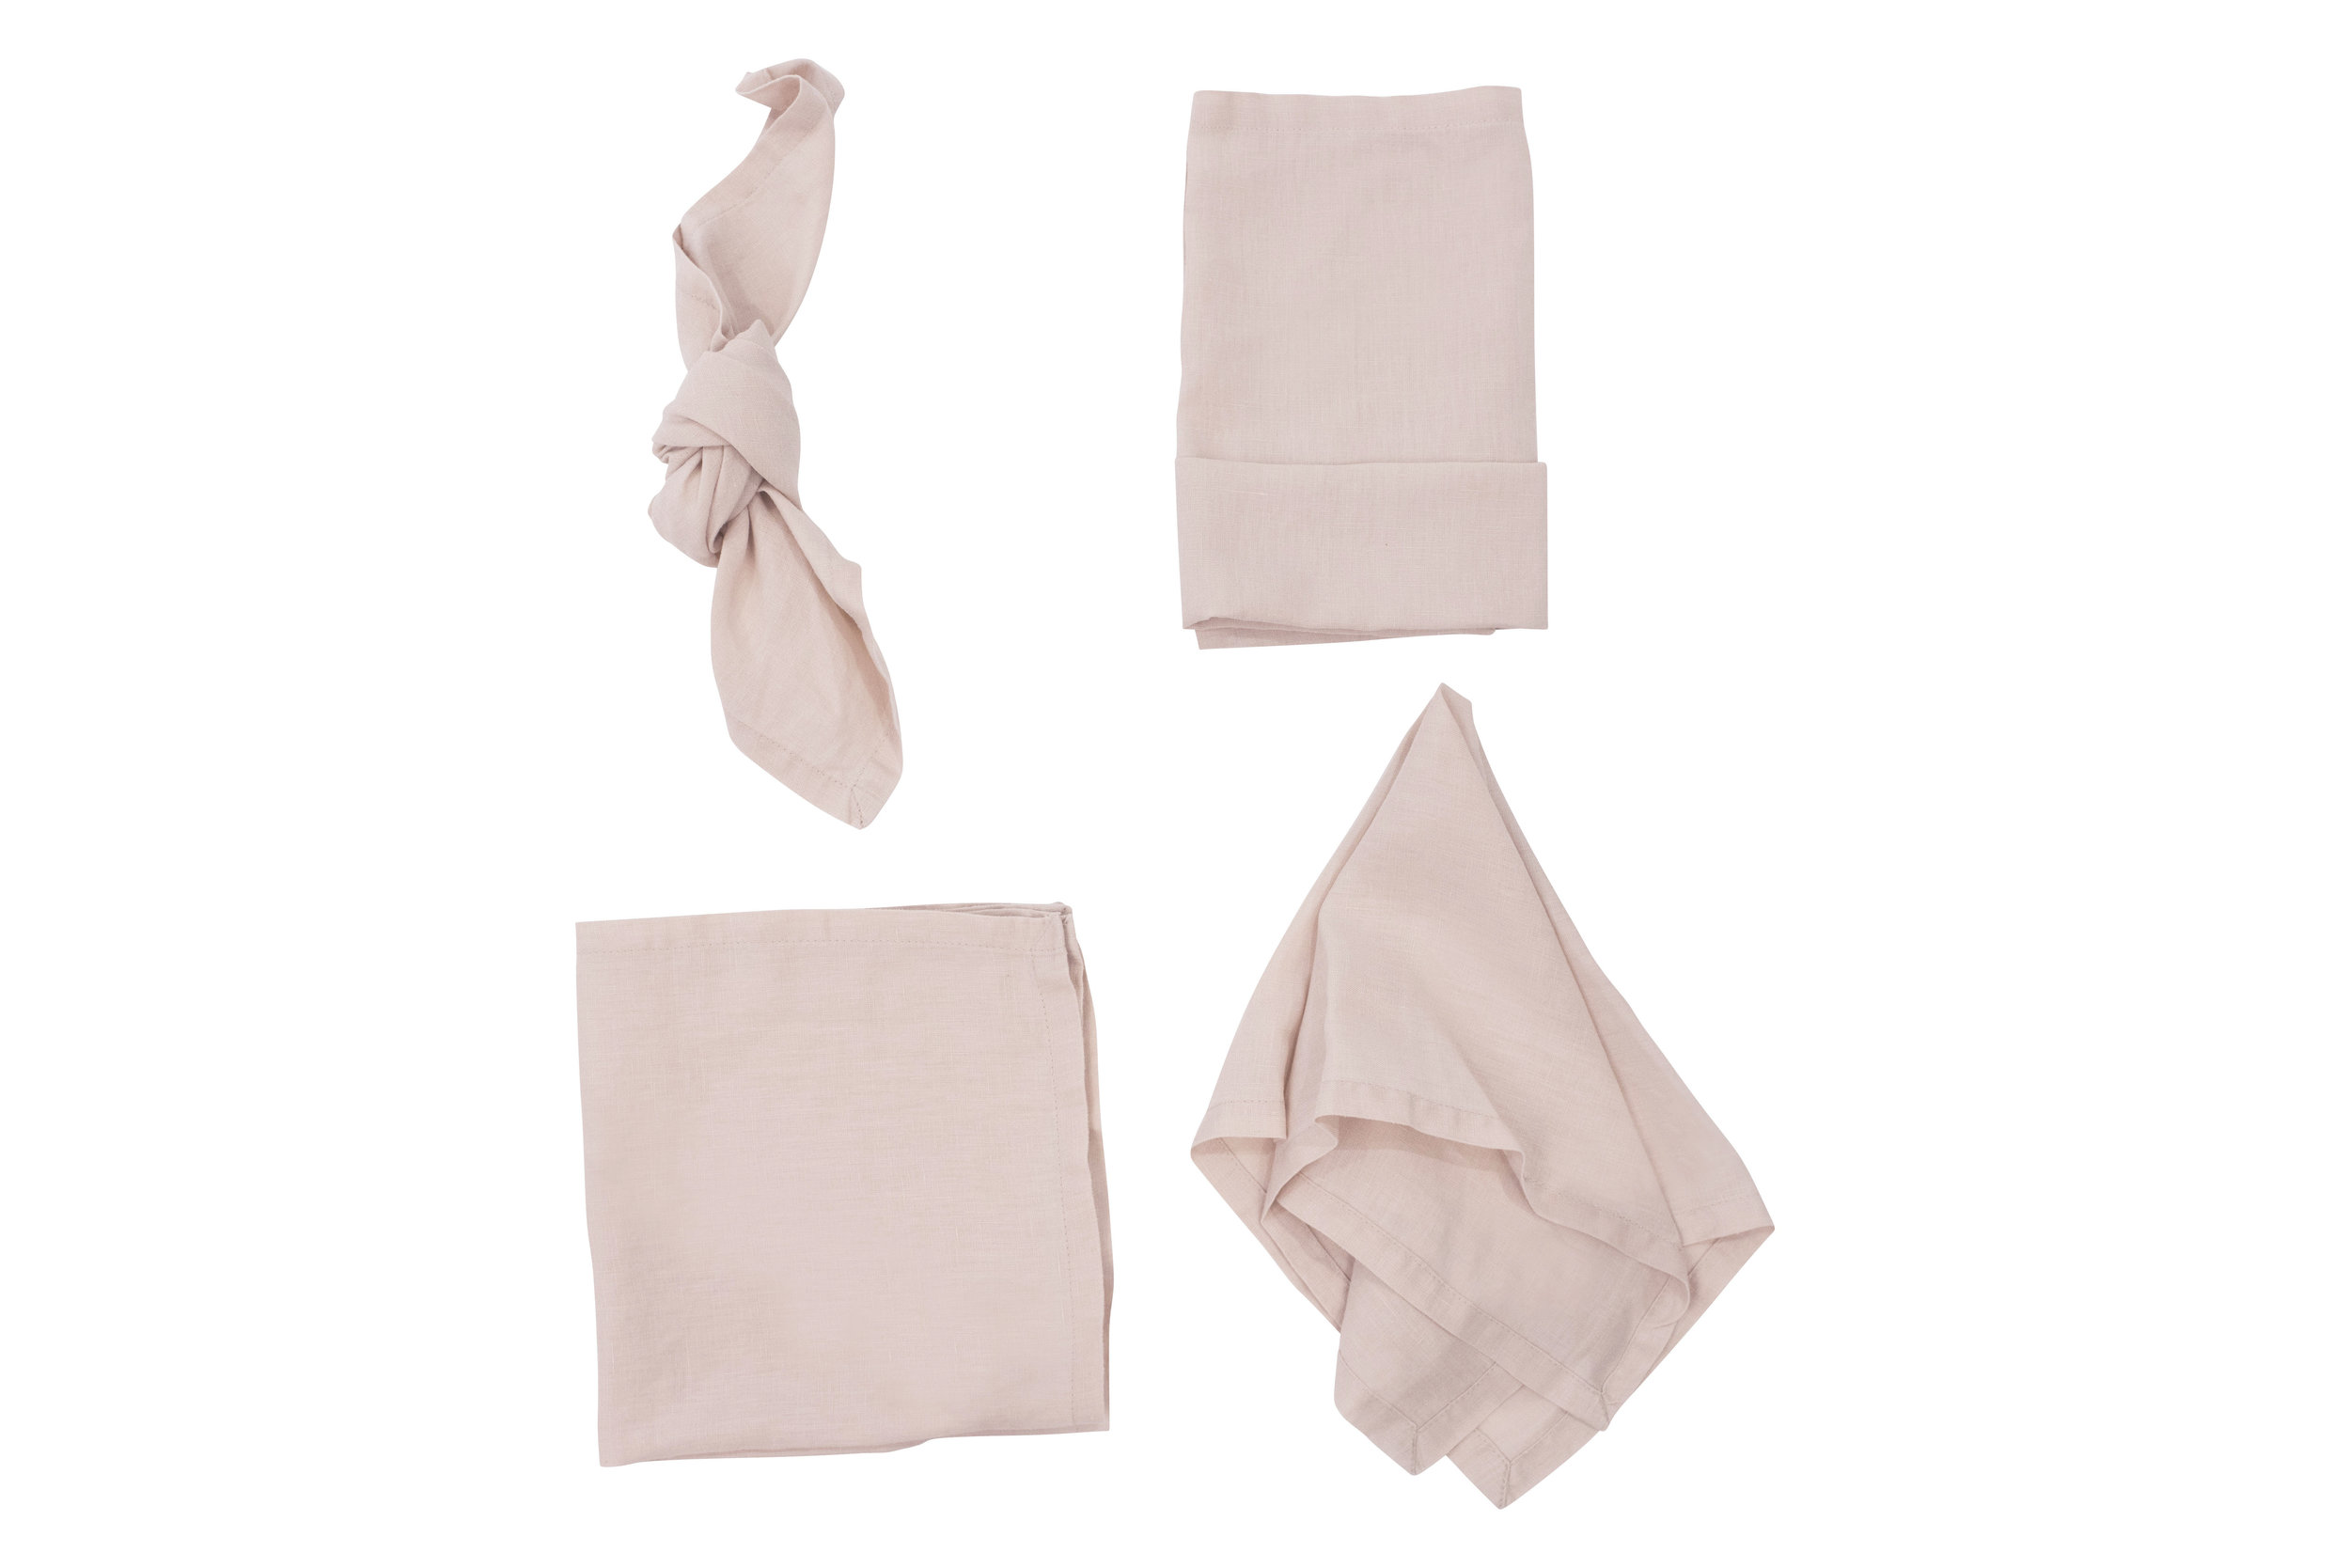 Blush Napkin, $2.70 each inc GST & Cleaning, enquire  here